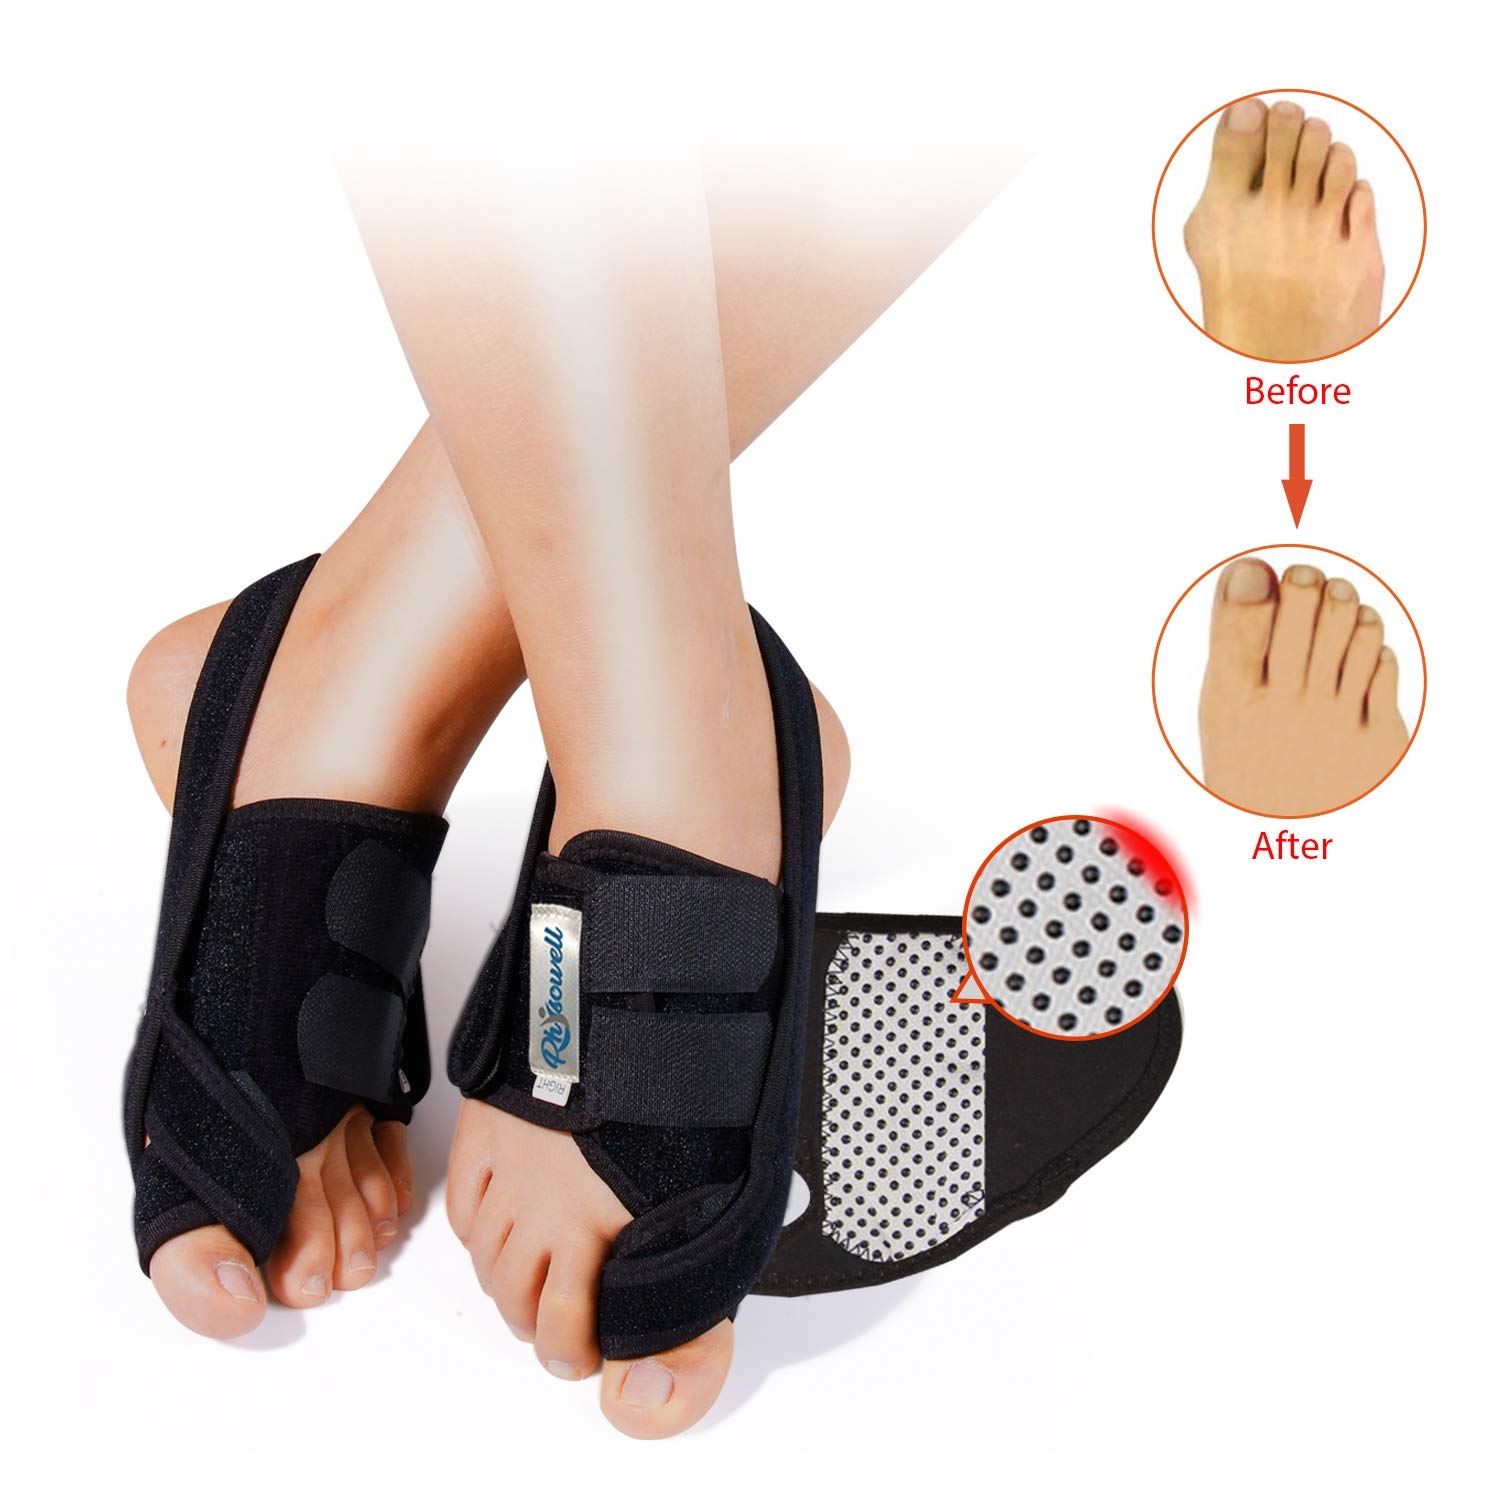 Bunion Splints- Hallux Valgus Bunion Corrector Protector with Adjustable Hook and Loop Toe Straighteners - Ideal for Night Time Bunion Correction and Hammer Toe Pain Relief (L) by Physowell